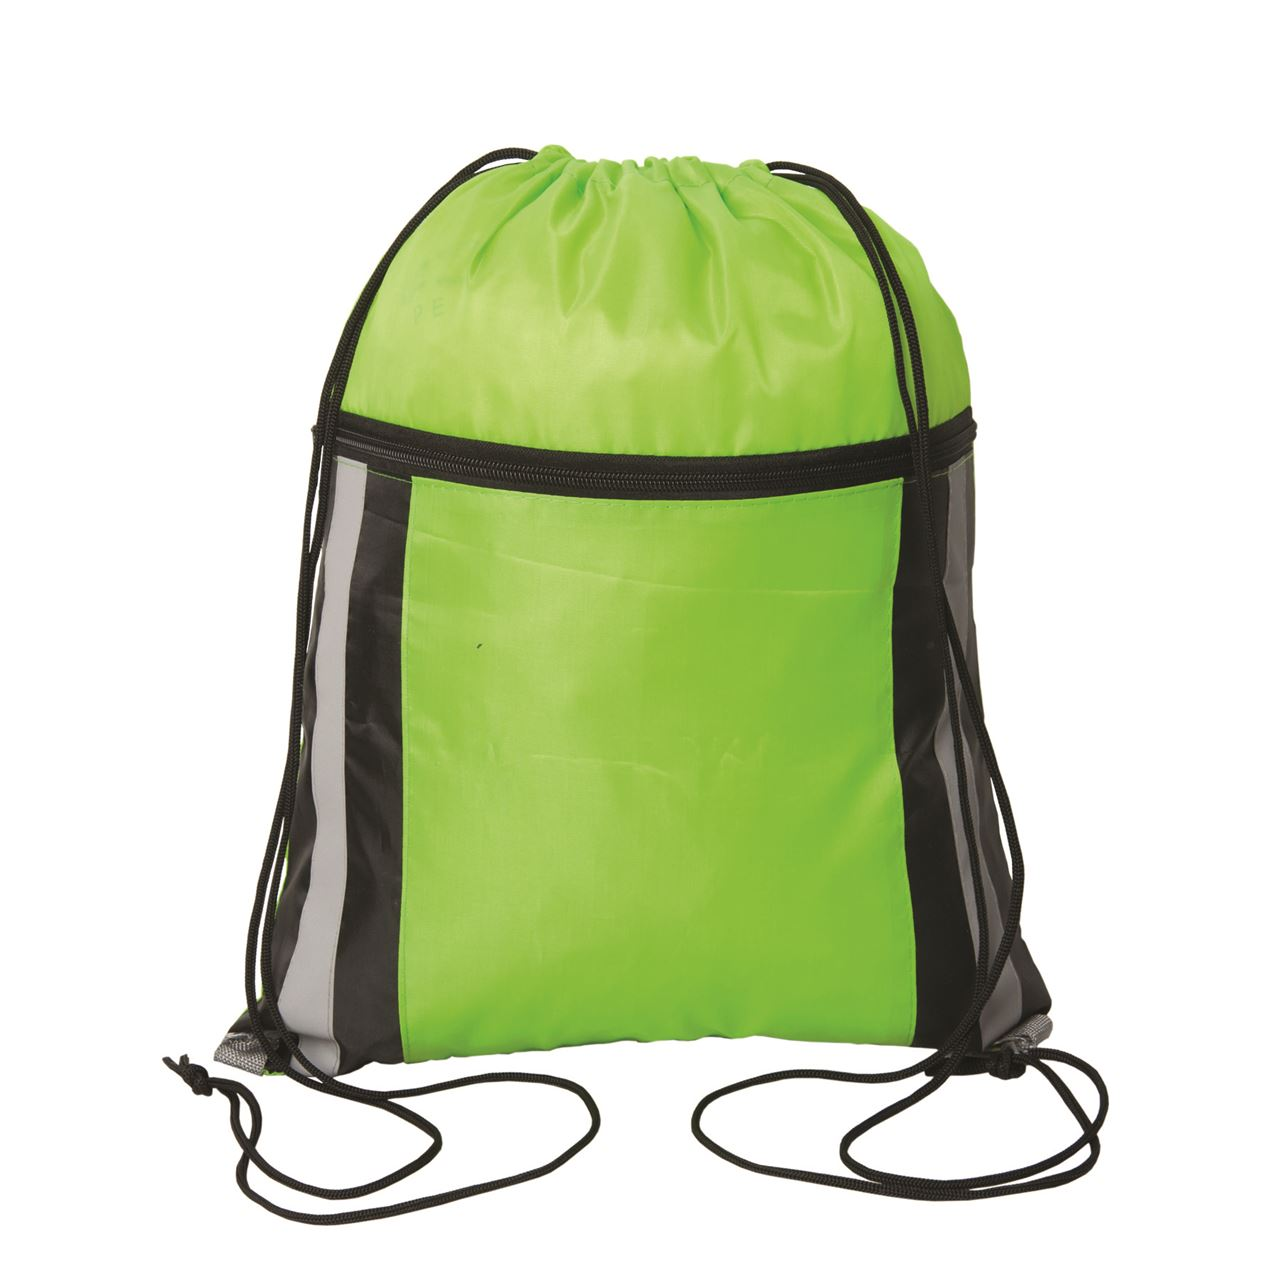 Picture of Cinch Dazzler Reflective Drawstring Bag